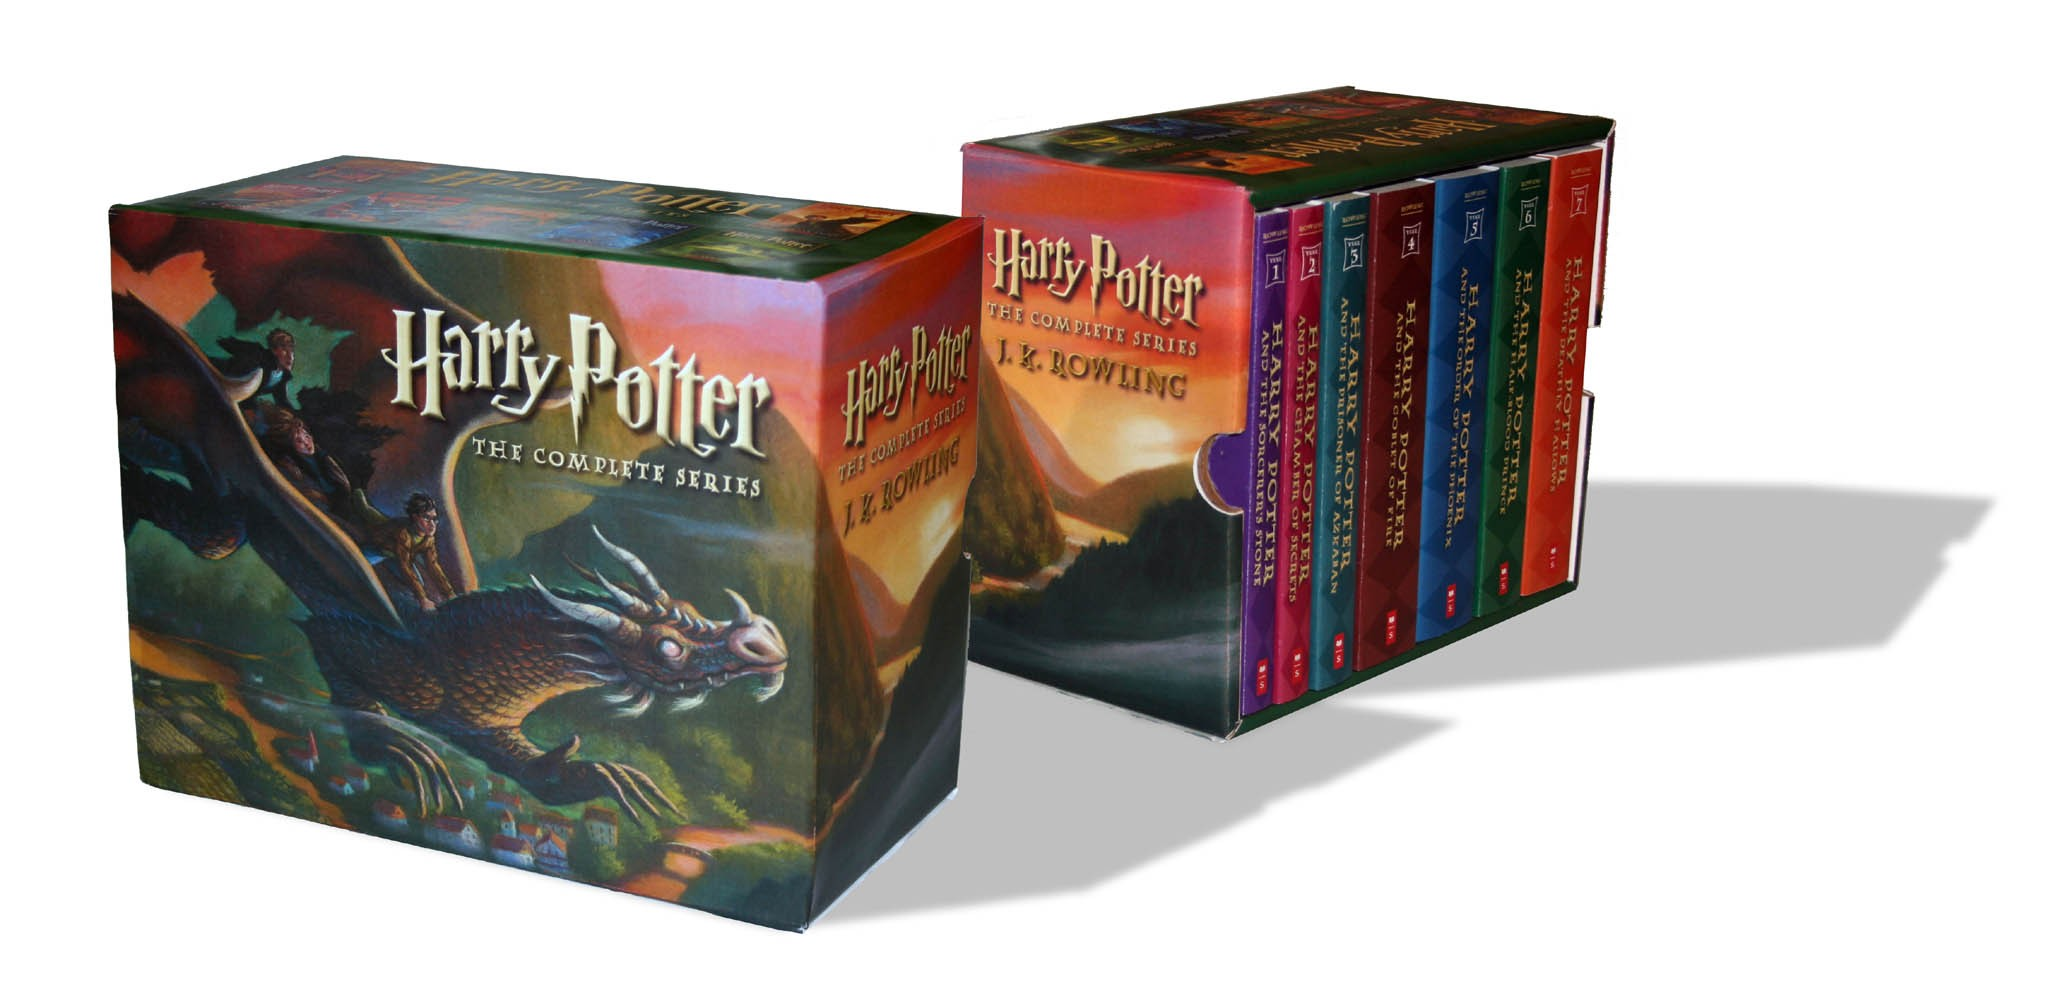 Harry Potter Book Is About : Harry potter paperback box set books children s